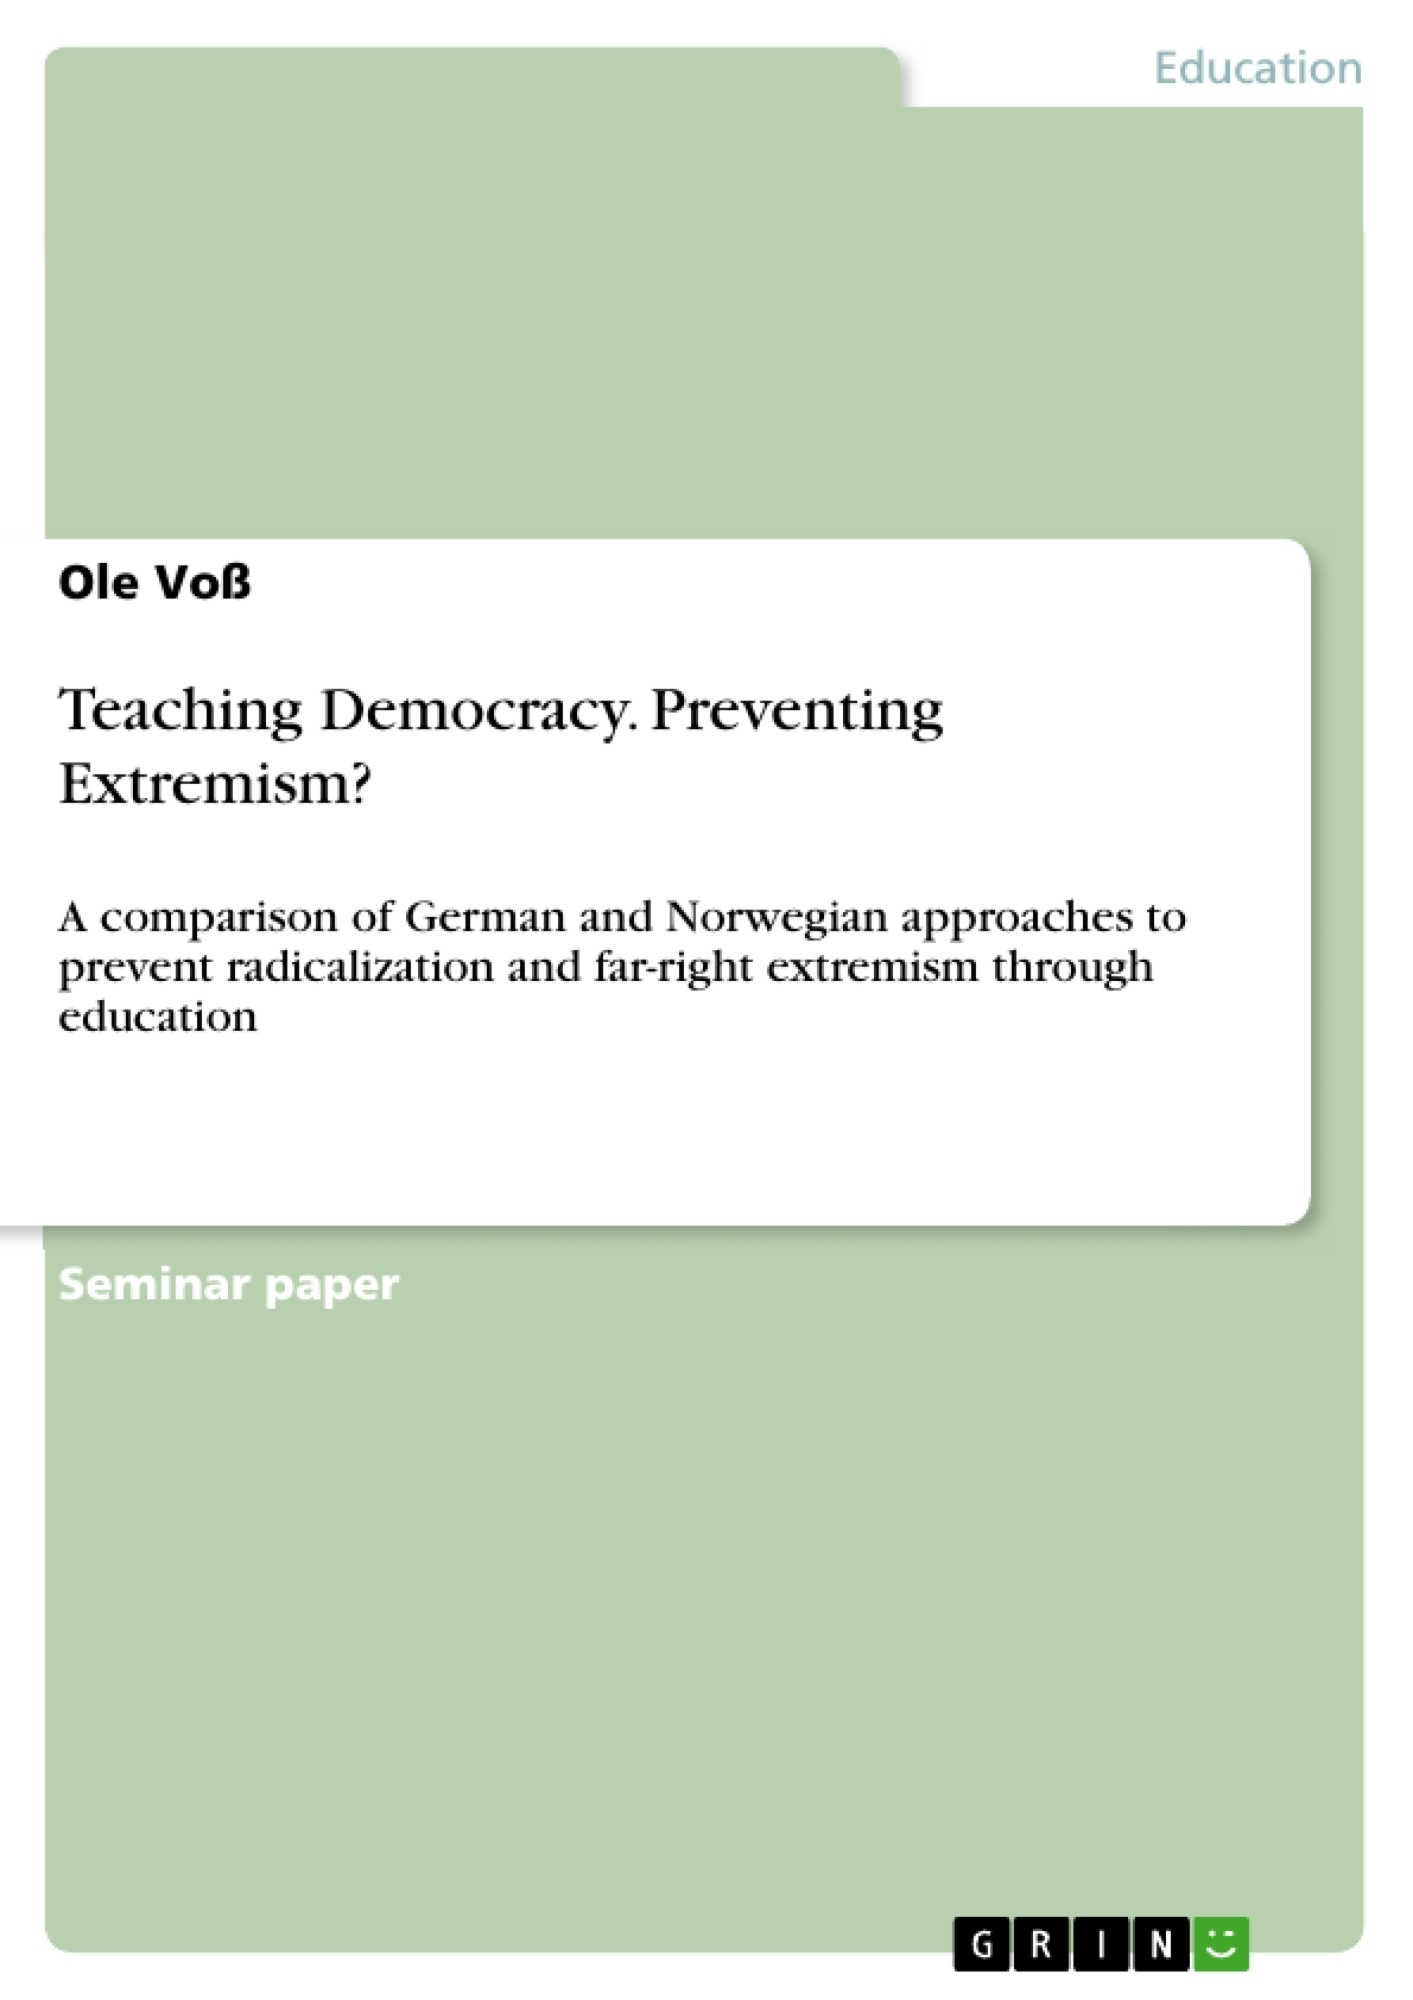 Title: Teaching Democracy. Preventing Extremism?